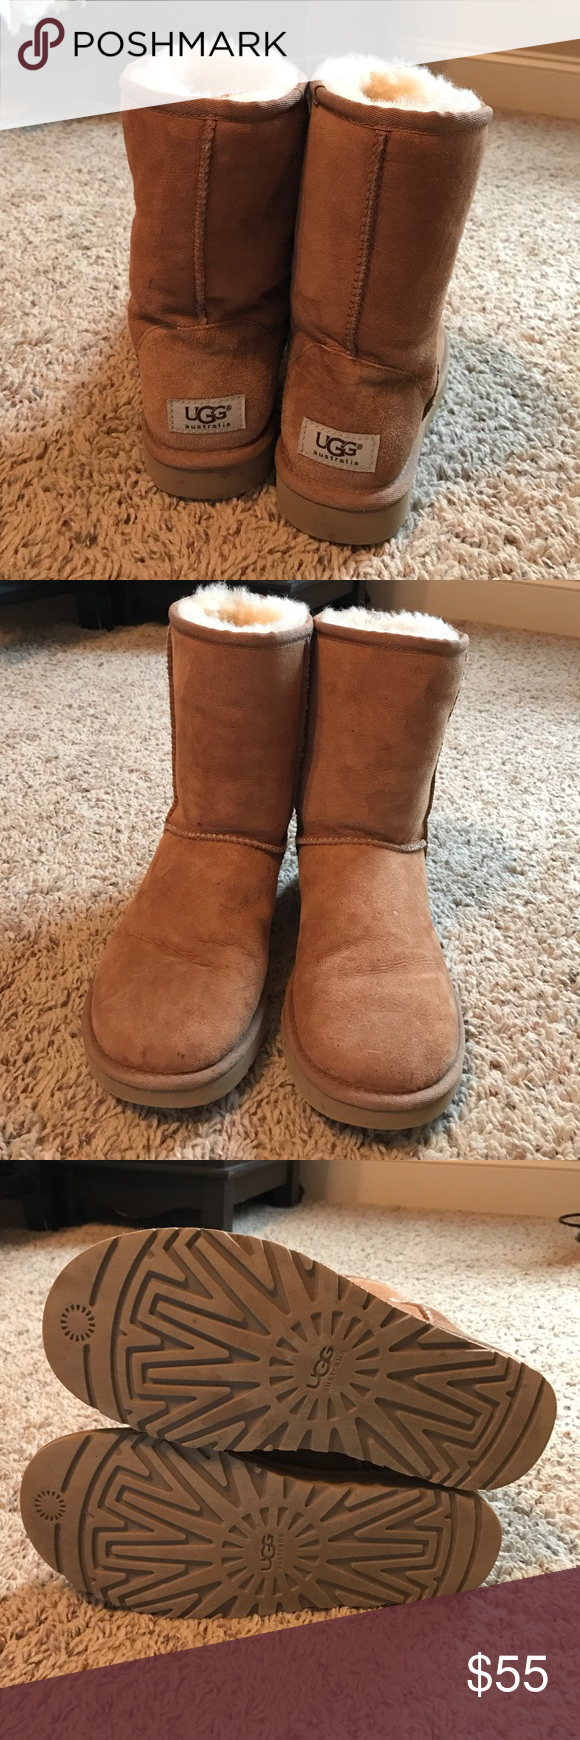 Like new Uggs! Like new classic Ugg Boots. Size 7 and are suede protected. Worn only a couple of times. UGG Shoes Winter & Rain Boots